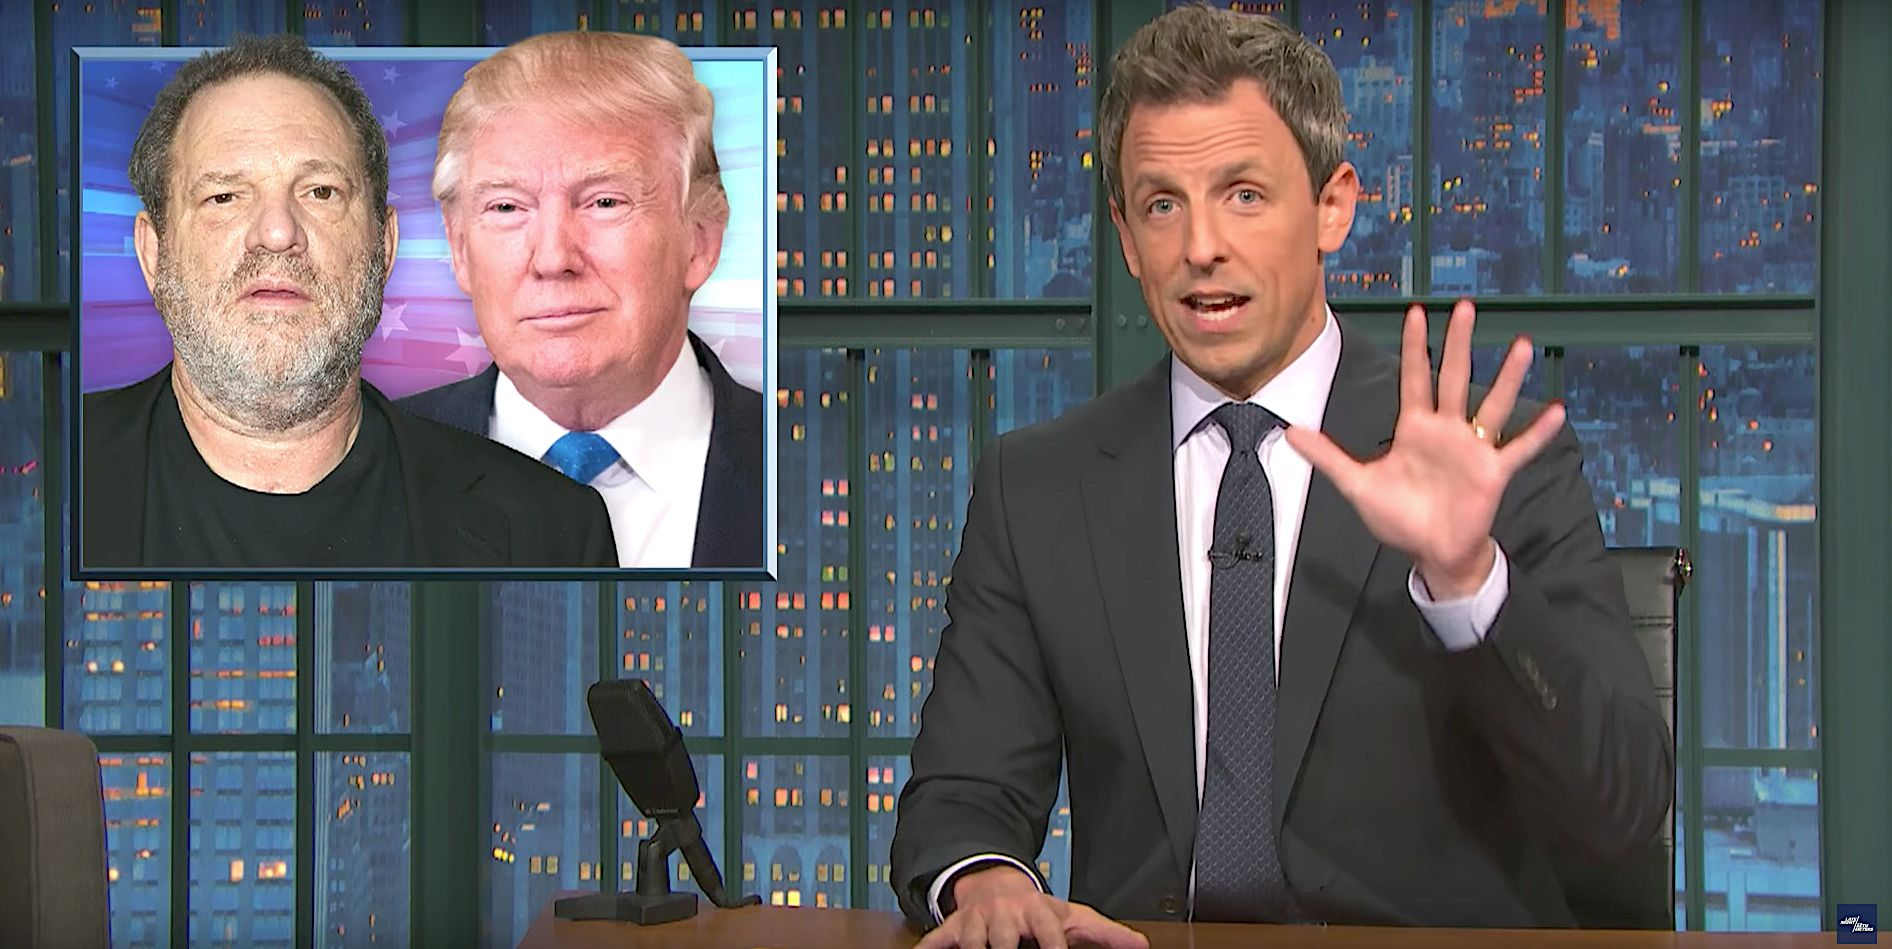 Seth Meyers Rips 'Systemic Misogyny' That Enables 'Powerful, Predatory Men'